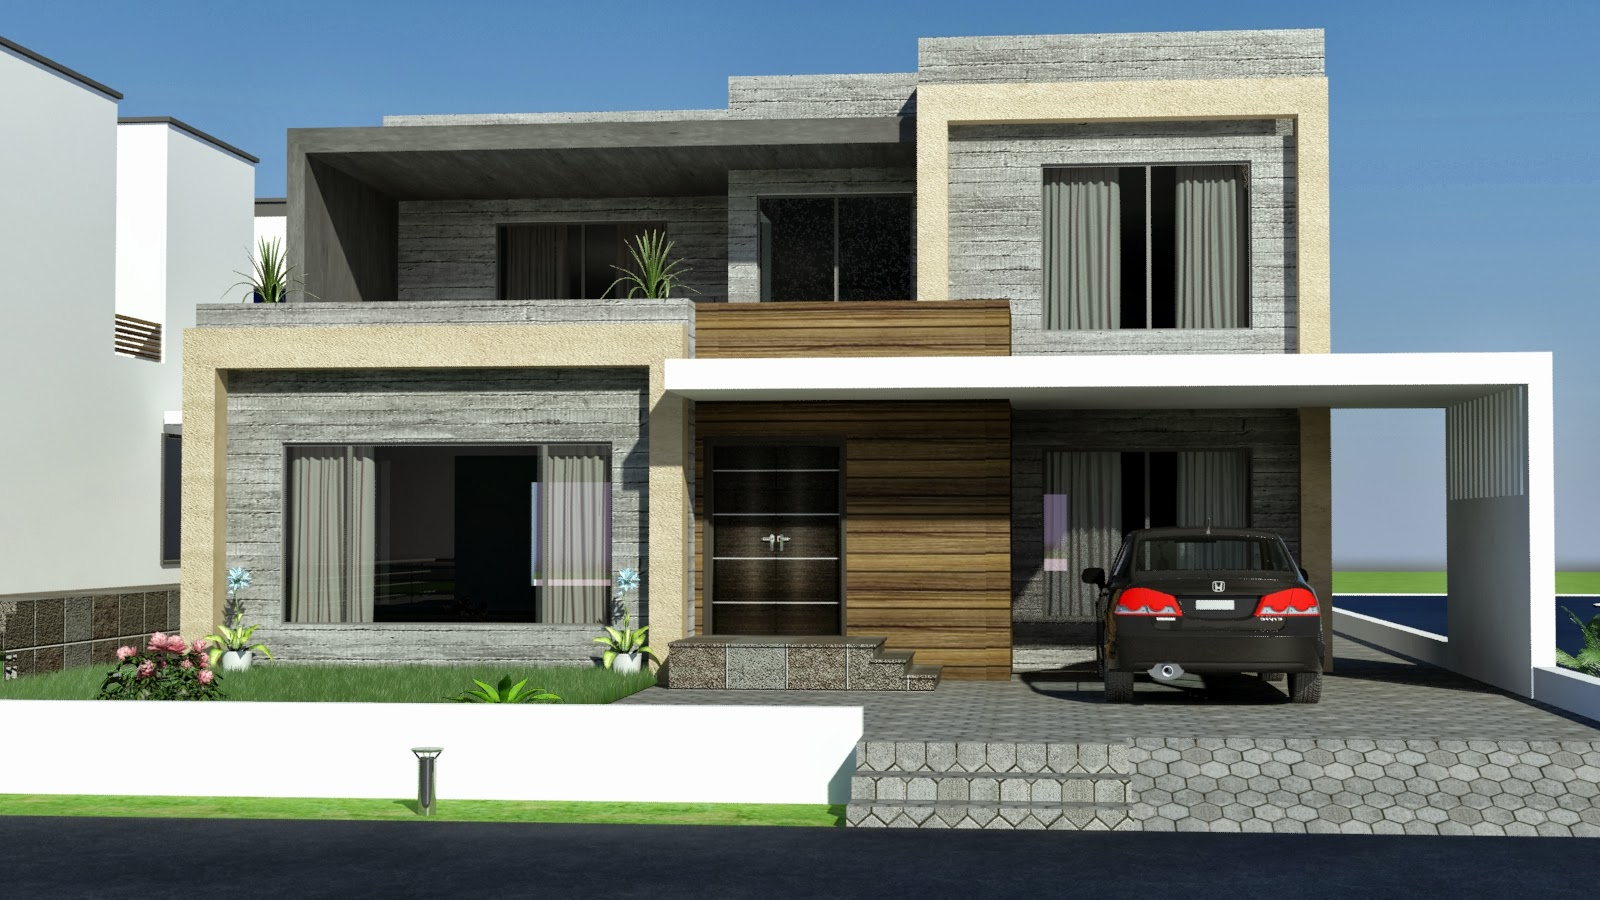 3d front 1 kkanal old design convert to modern contemporary design renovation in - D home design front elevation ...